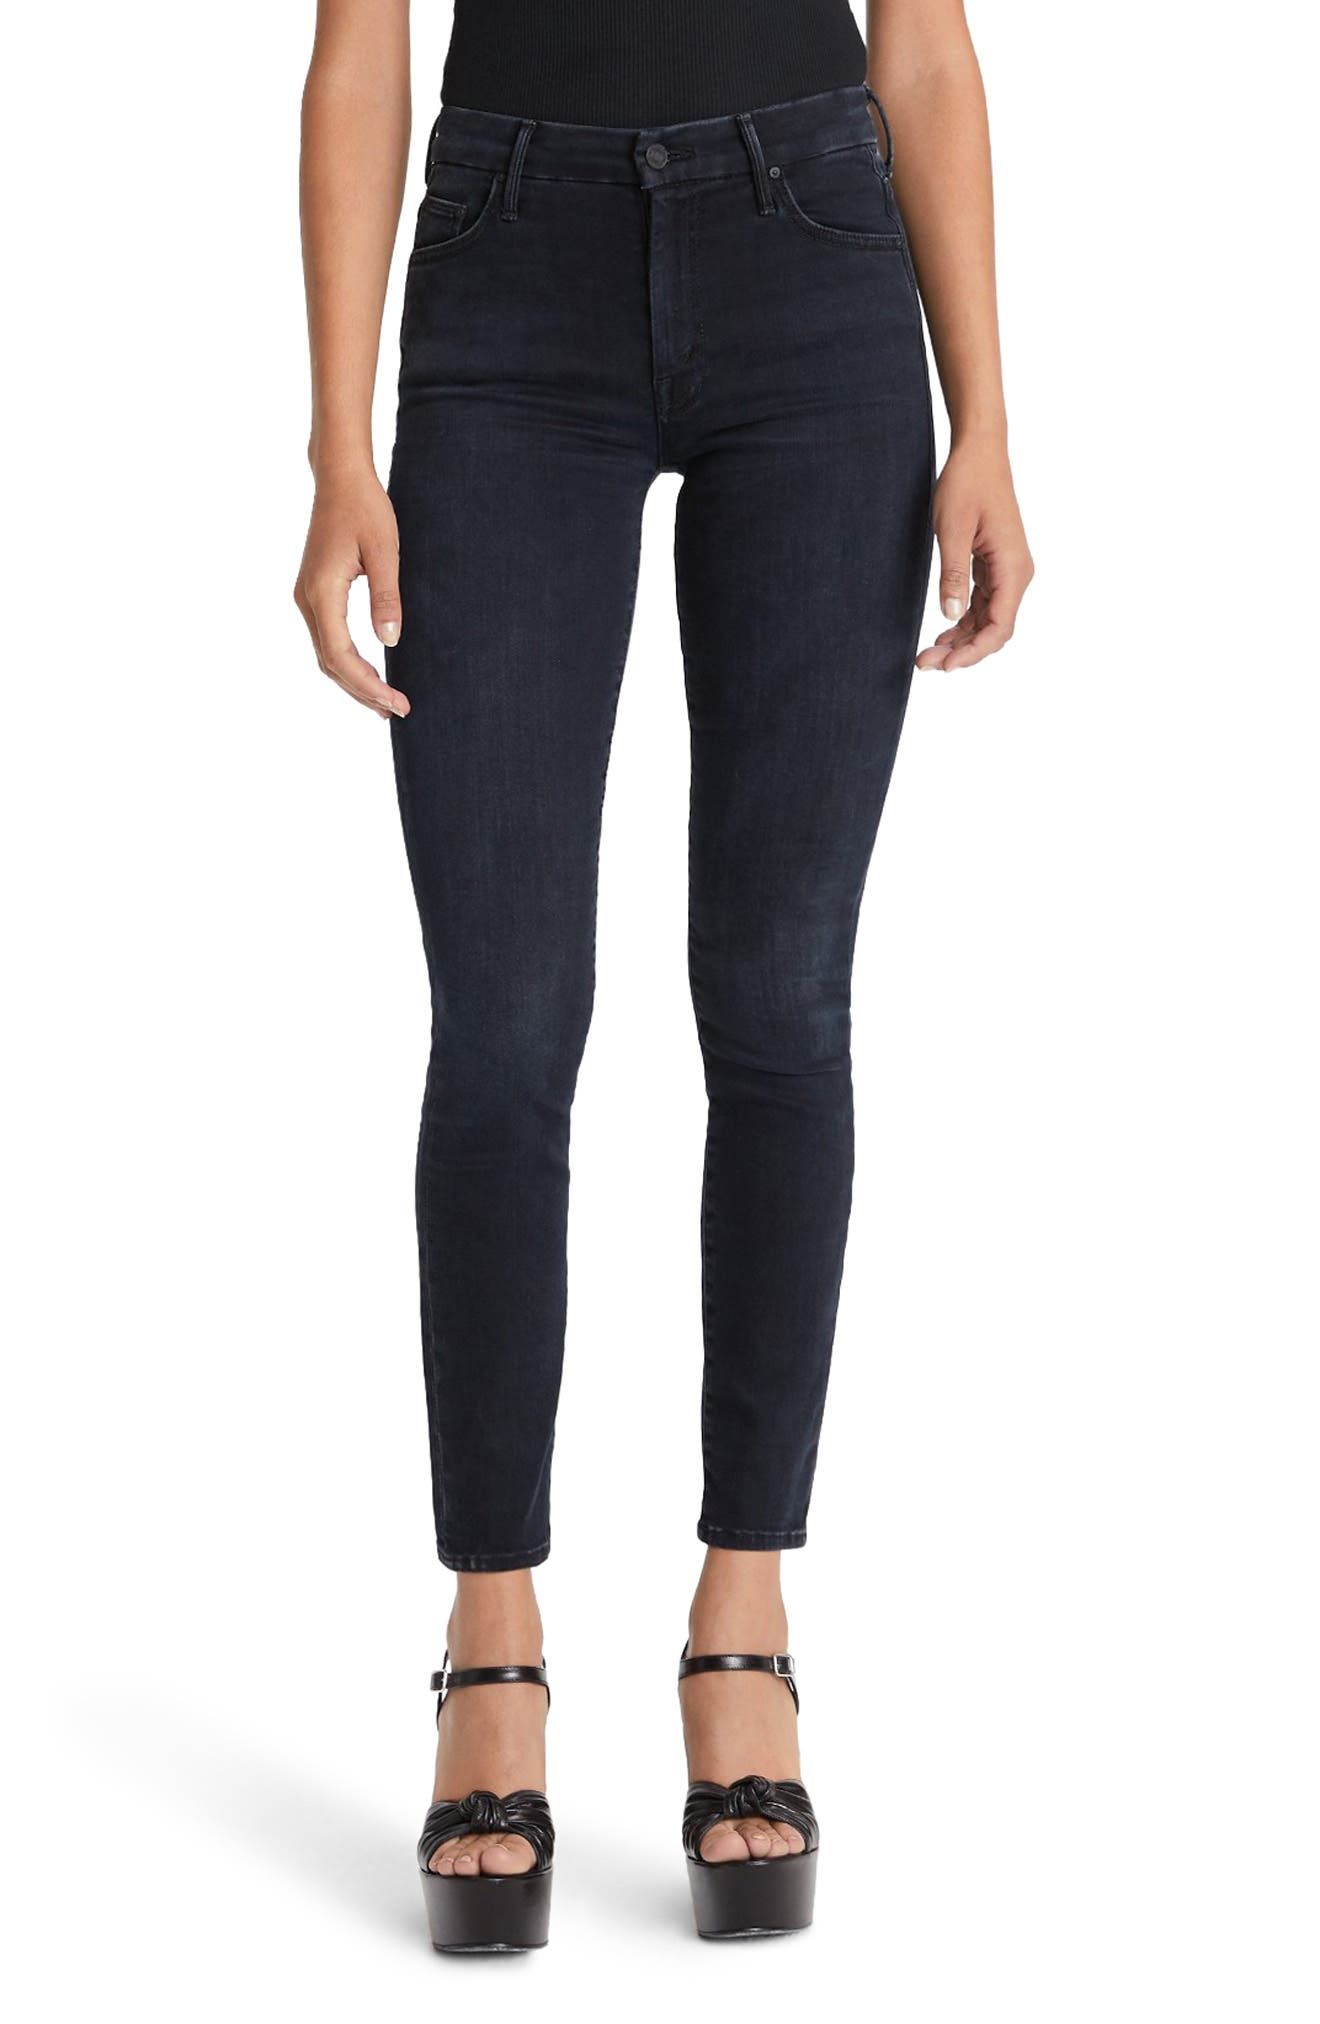 The Looker Embroidered High Waist Skinny Jeans by Mother